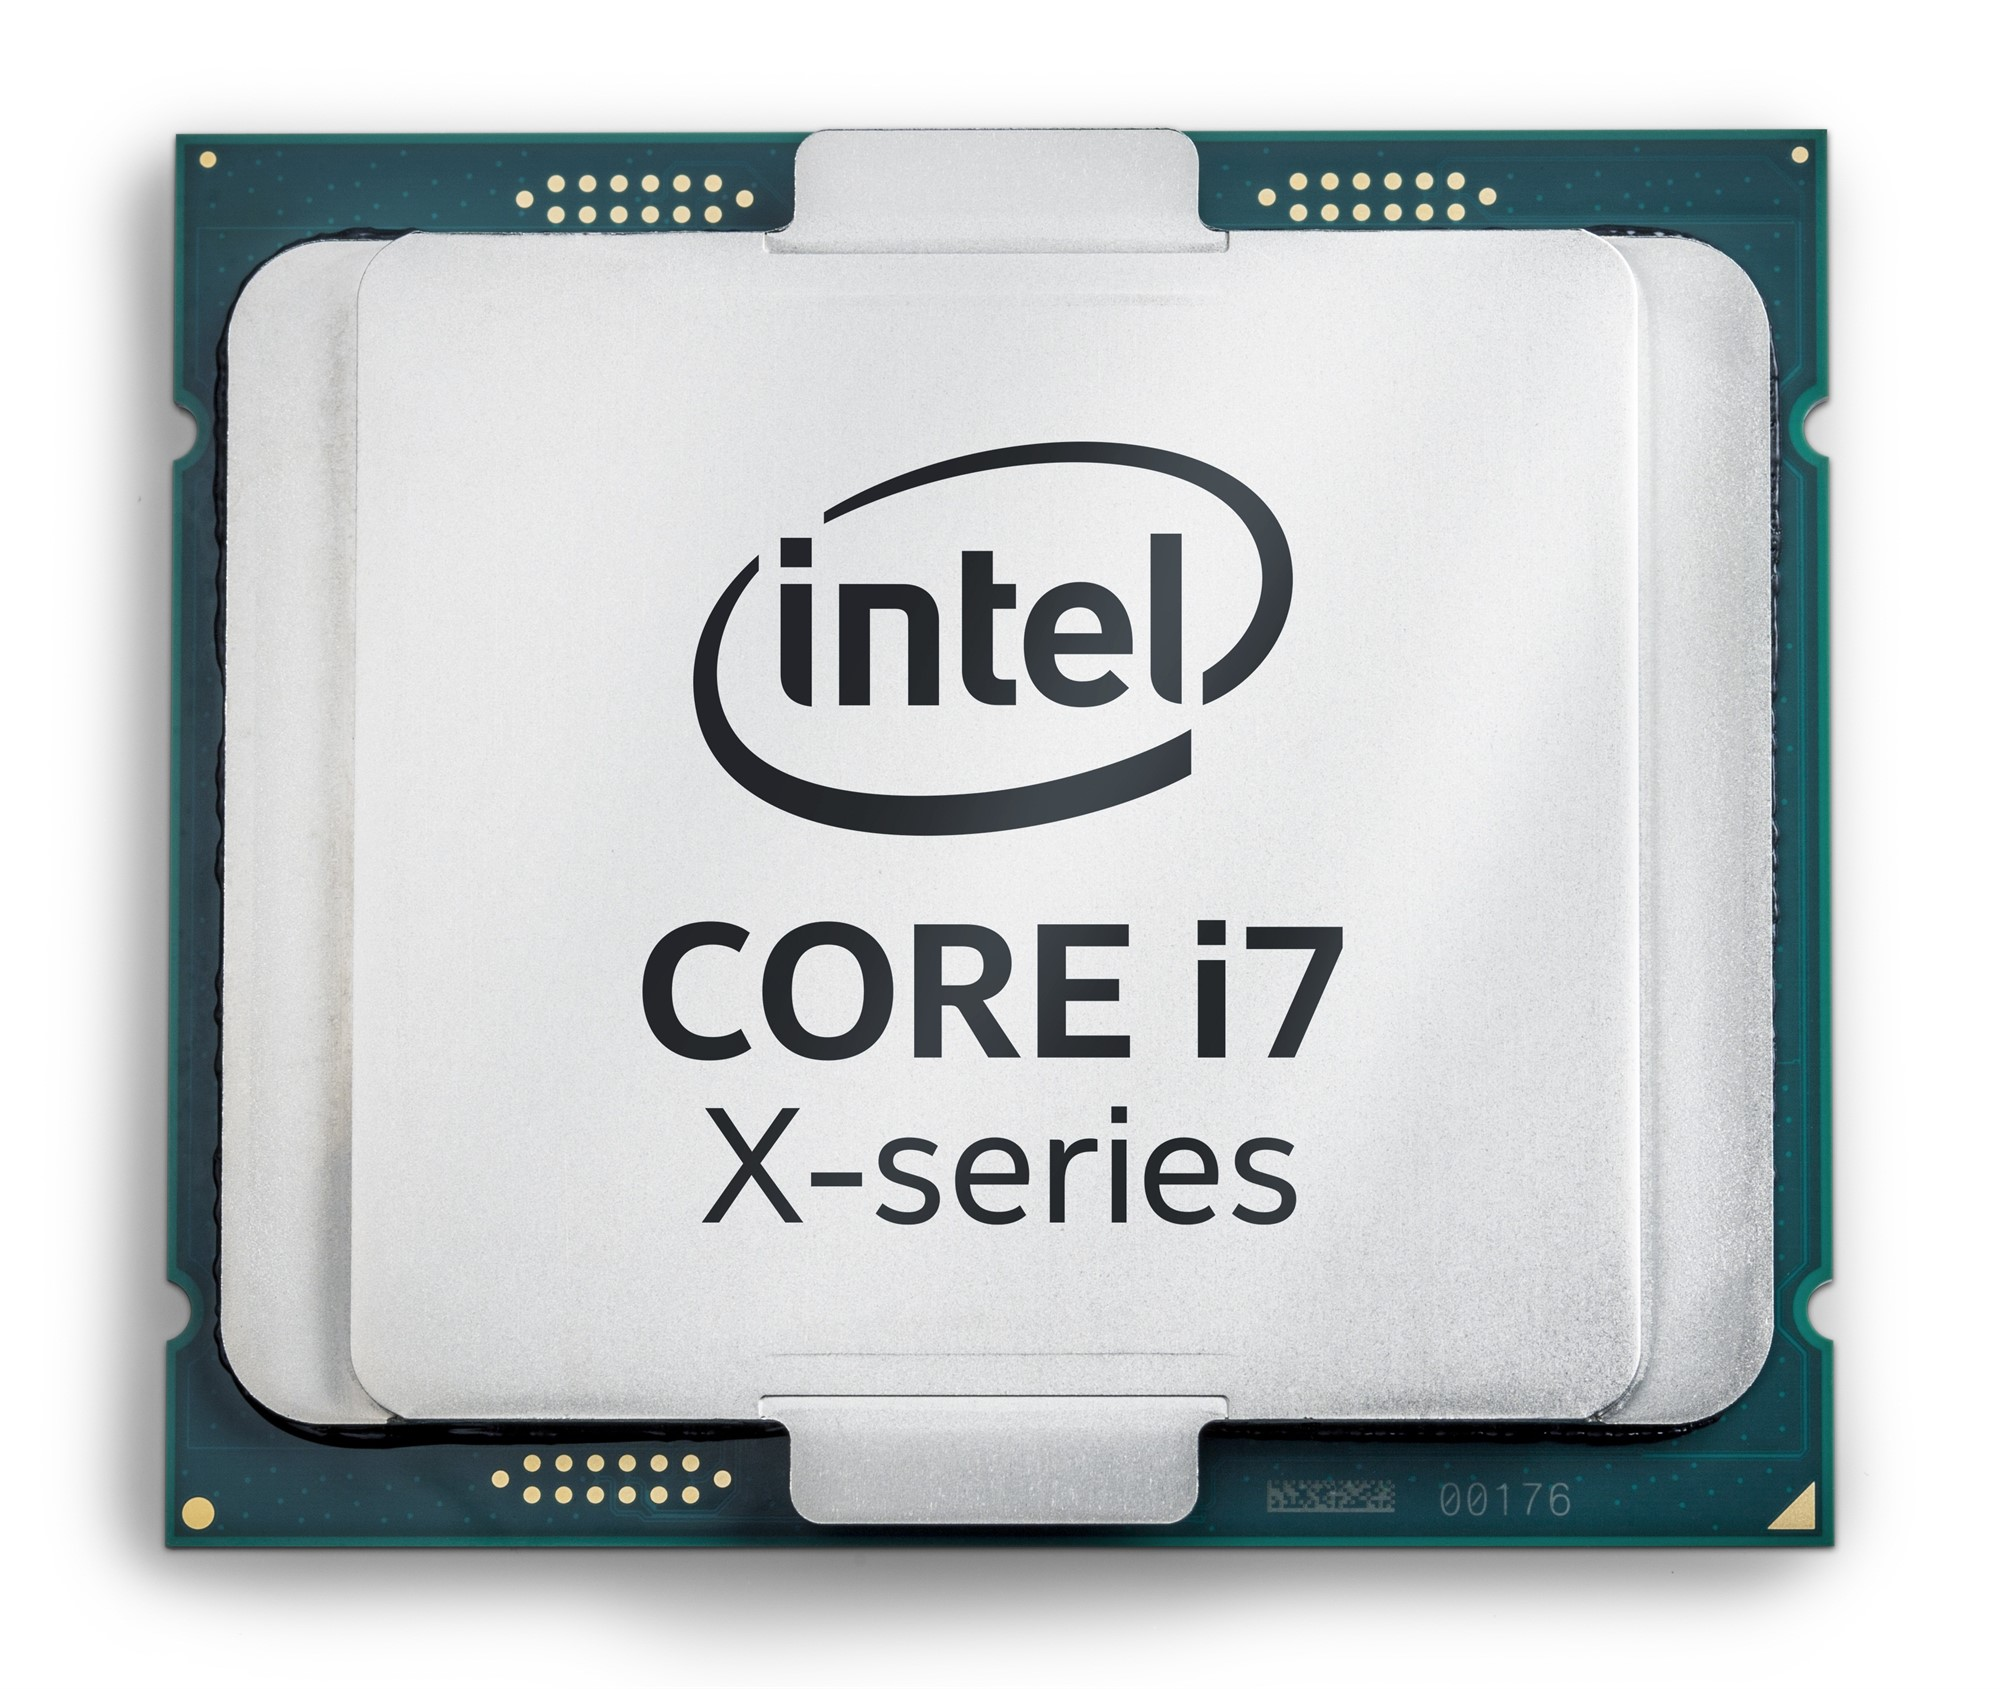 INTEL CORE I7-7740X X-SERIES PROCESSOR (8M CACHE, UP TO 4.50 GHZ) 4.3GHZ 8MB SMART CACHE BOX